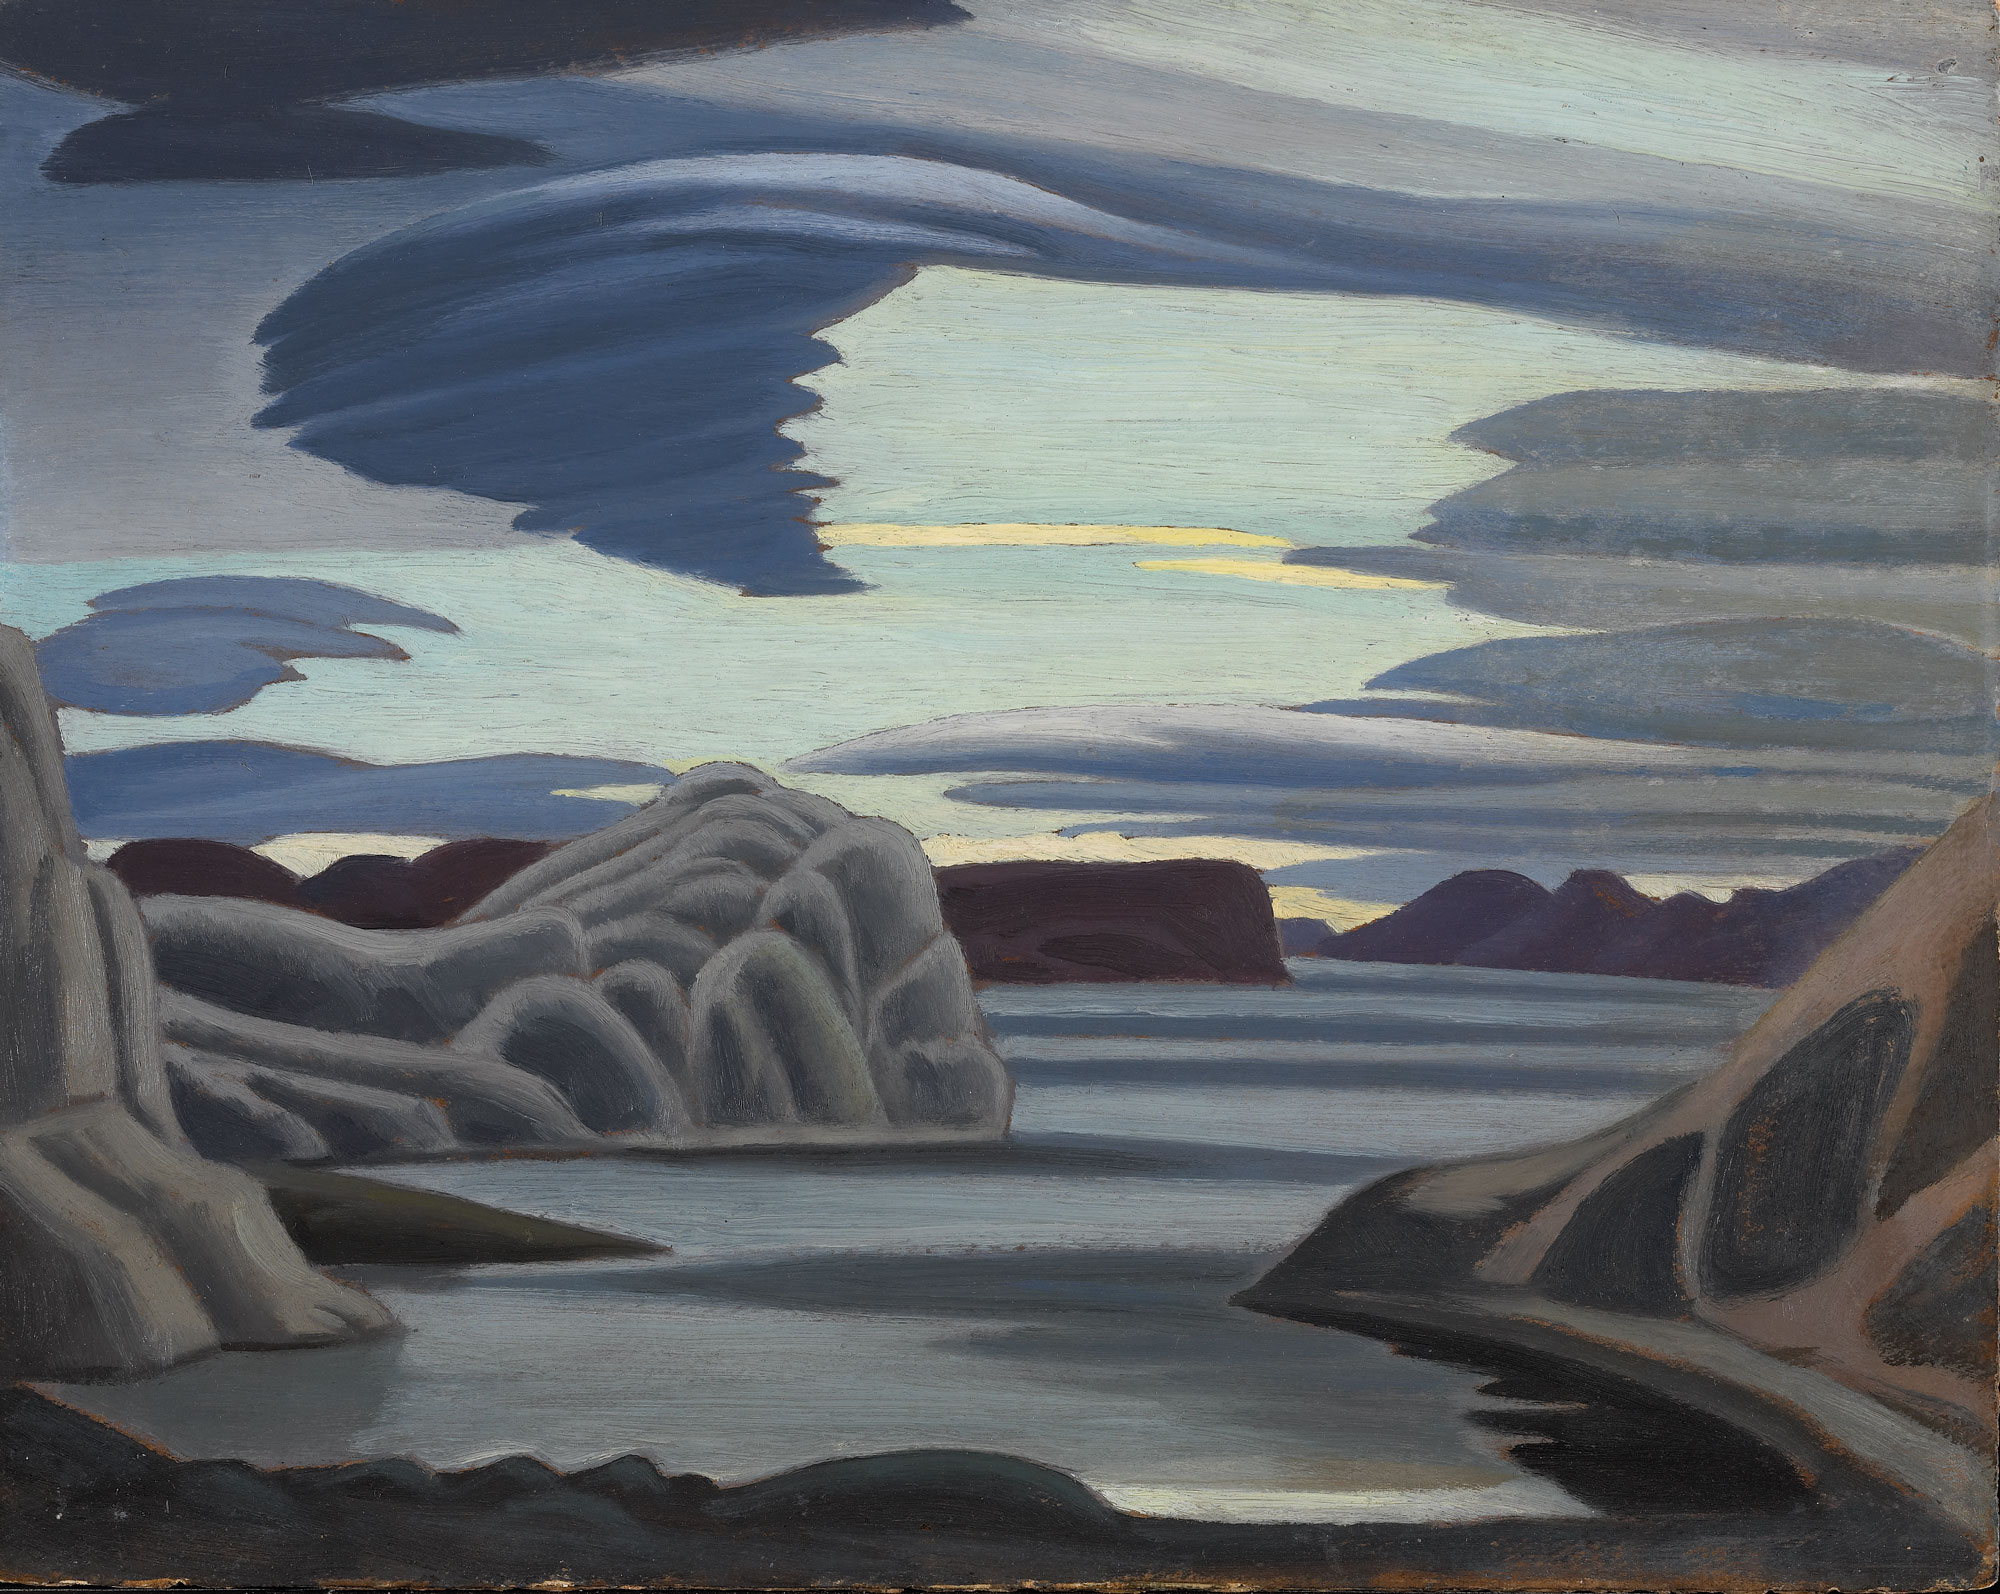 How did canadian artists in 20th century contribute to canadian identity?